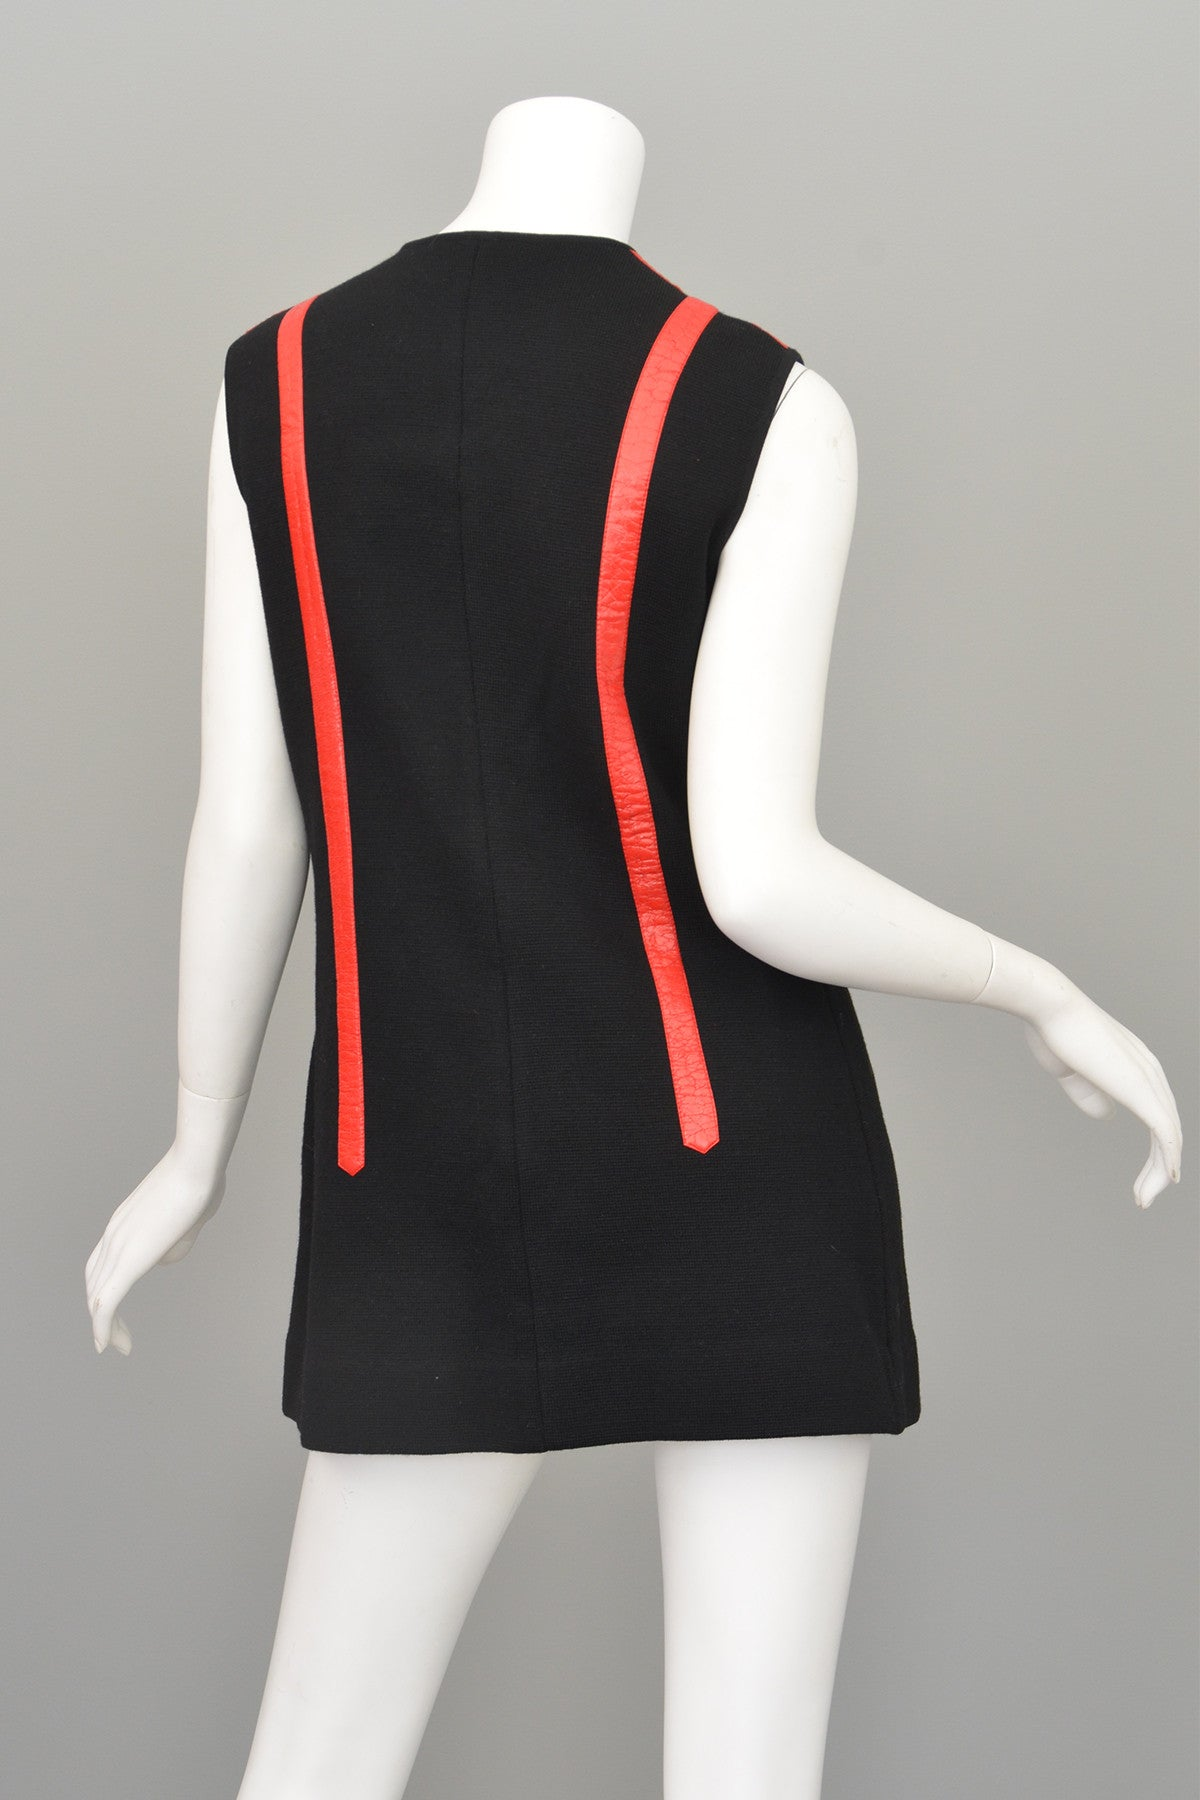 Vtg 1960s Black Knit Red Leather MOD Vest Tunic by Gina Teresa